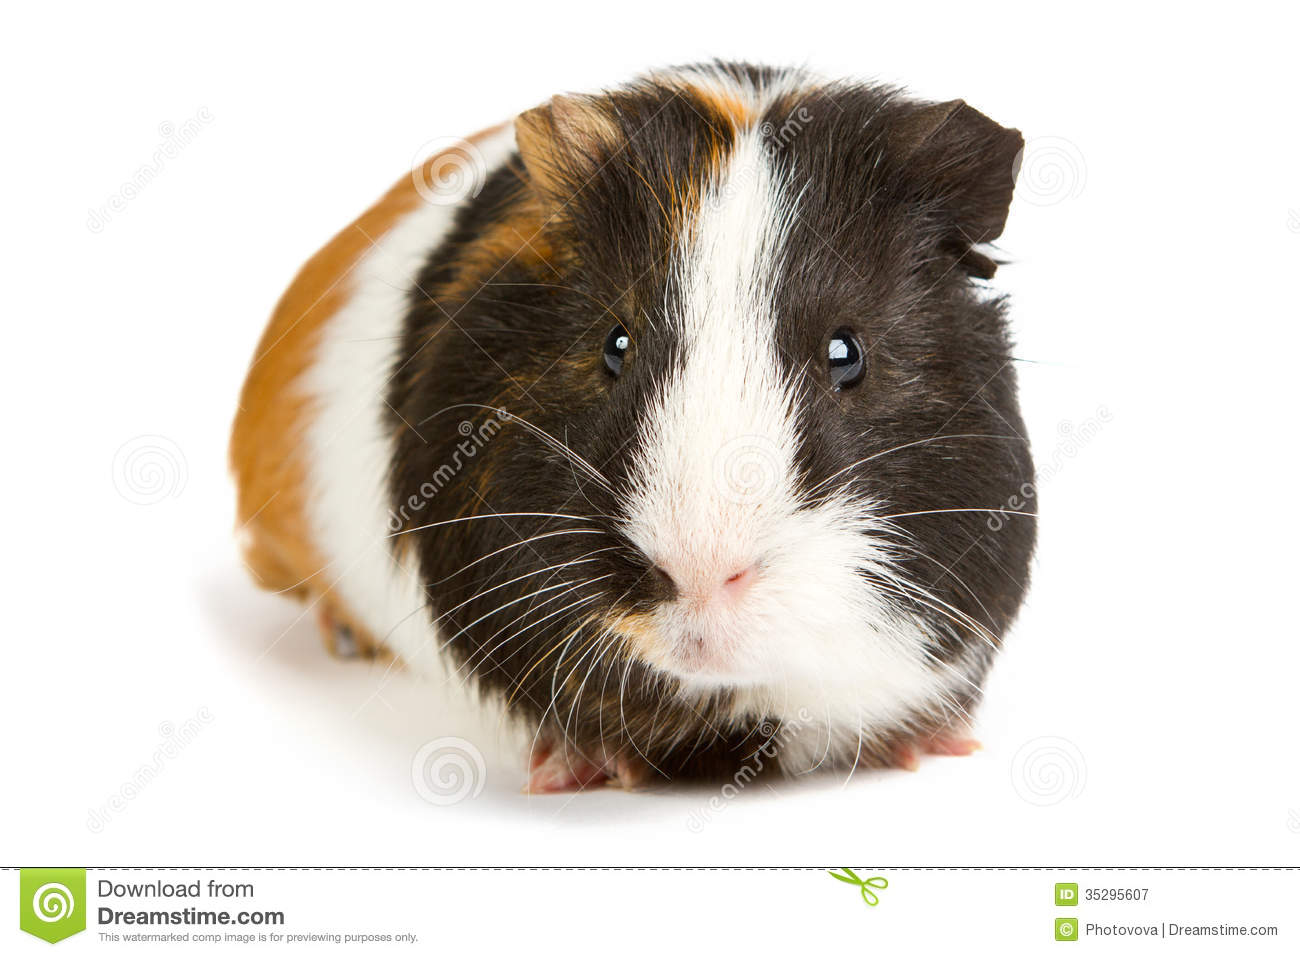 Guinea pig little pet rodent royalty free stock for Guinea pig pictures free